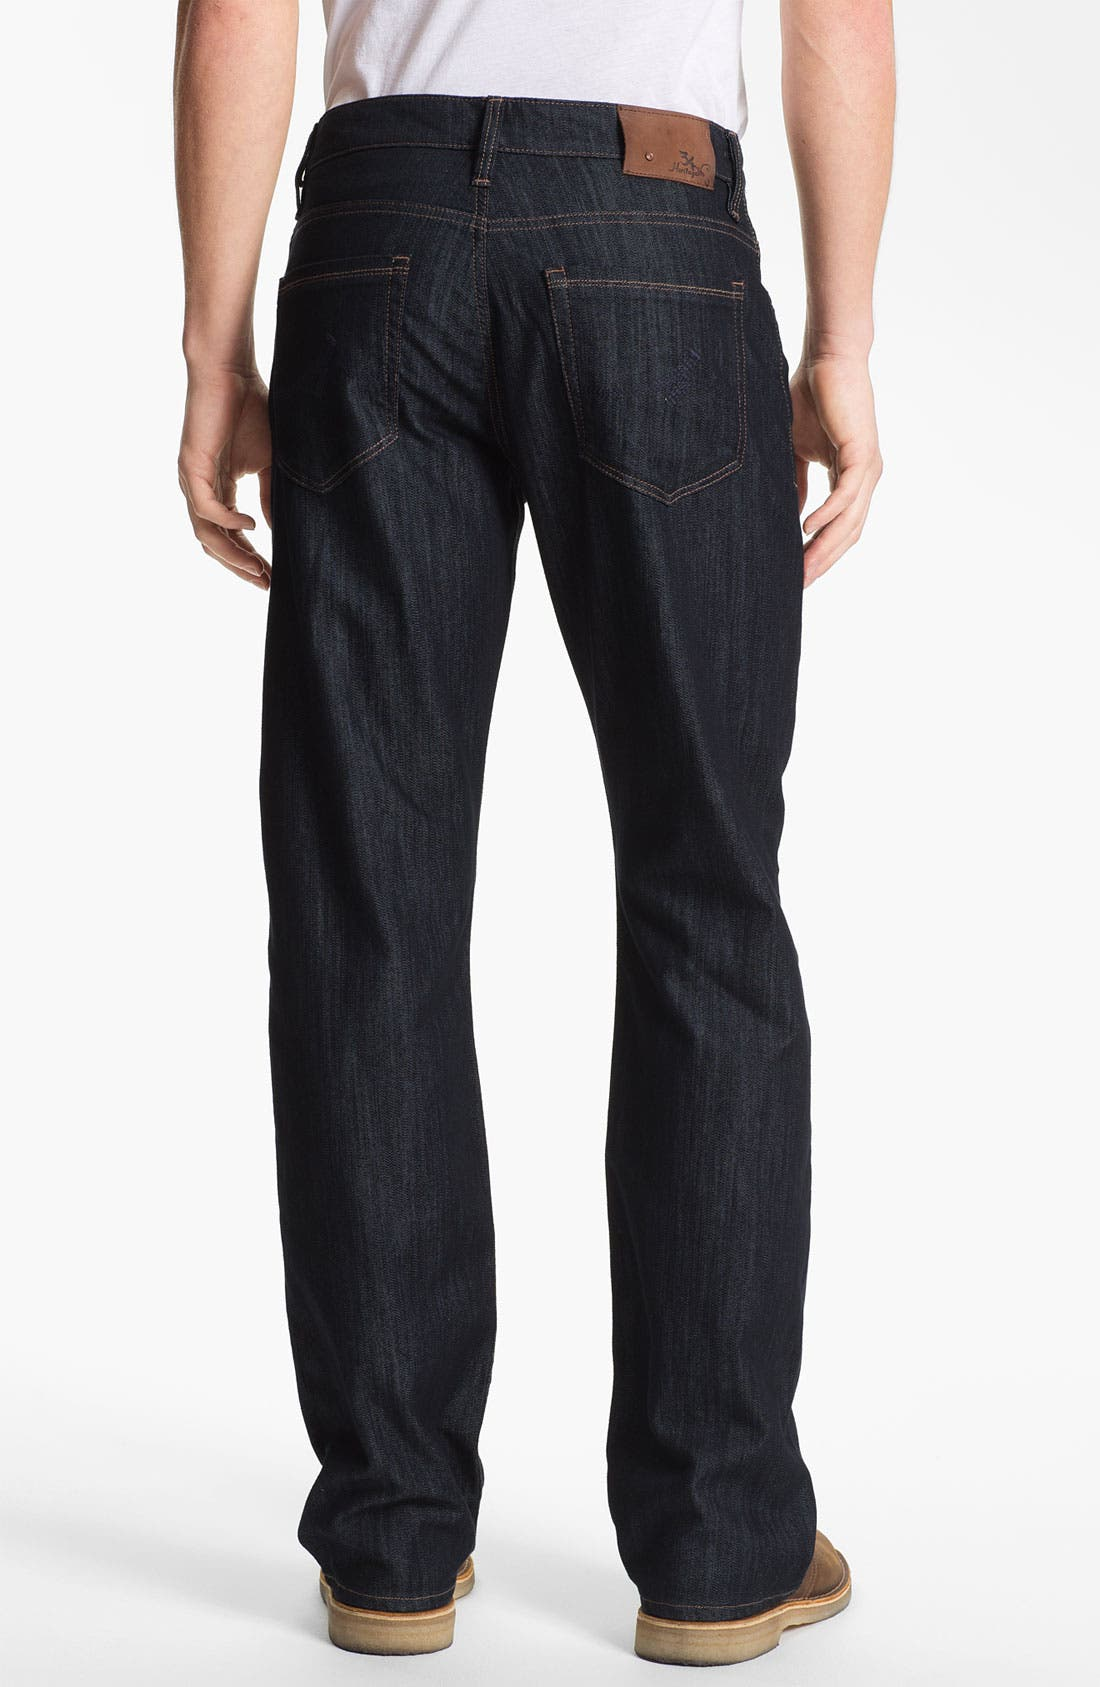 Alternate Image 2  - 34 Heritage 'Confidence' Relaxed Leg Jeans (Rinse Mercerized) (Online Only)